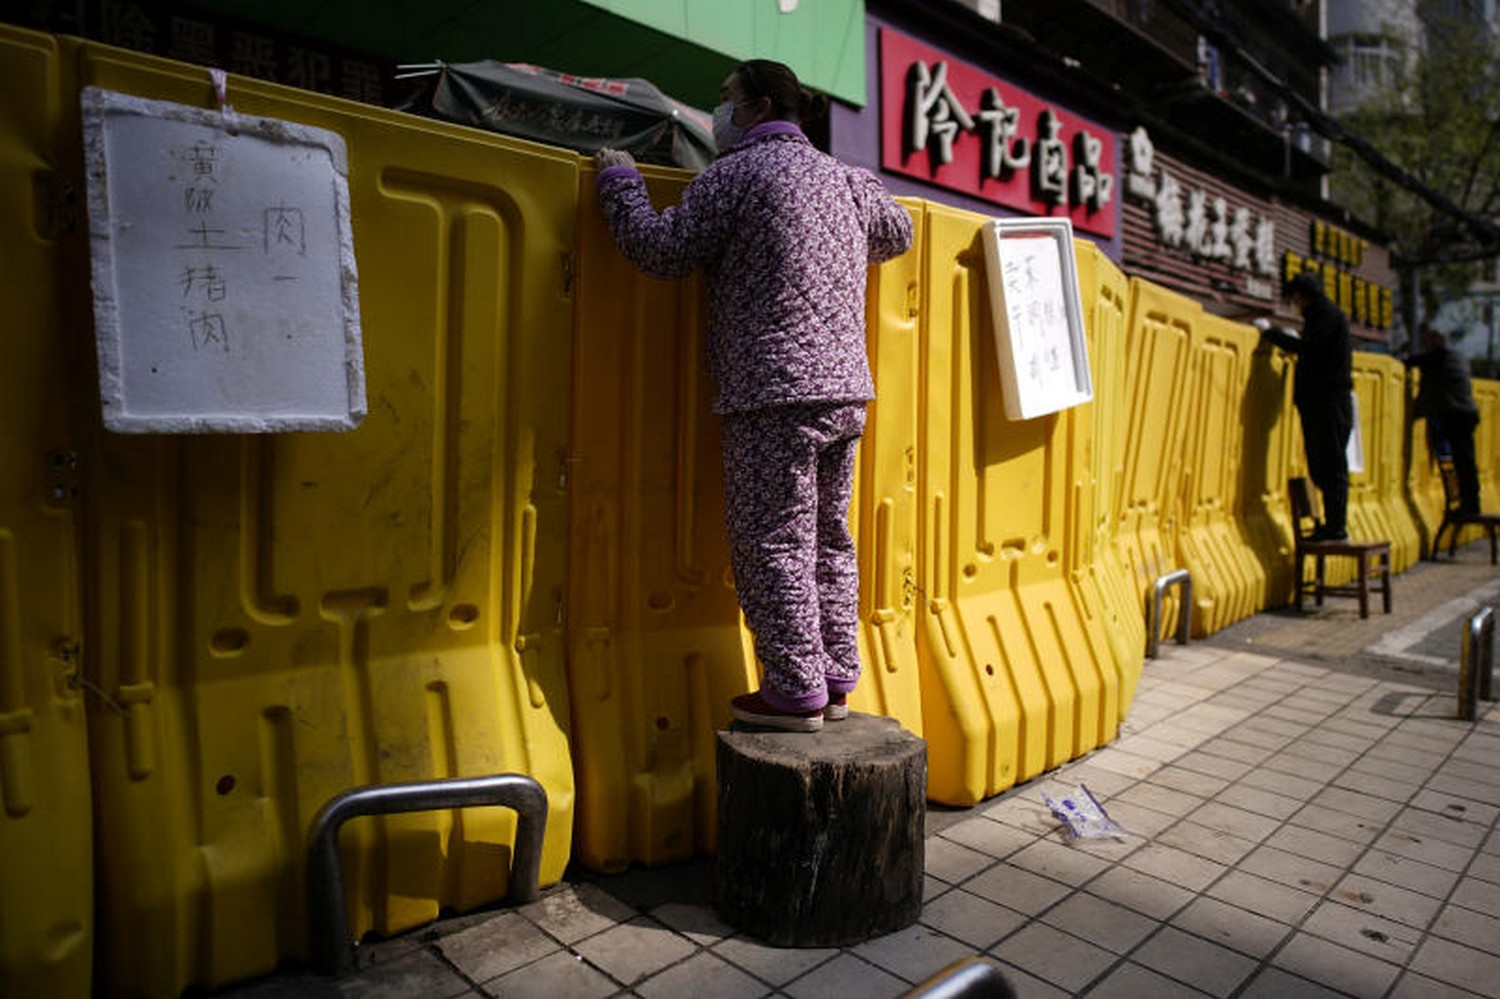 Residents buy groceries by standing on chairs and tree stumps to peer over barriers set up around a wet market on a street in Wuhan, Hubei province, the epicentre of China's coronavirus disease, on Wednesday. (Photo: Reuters)